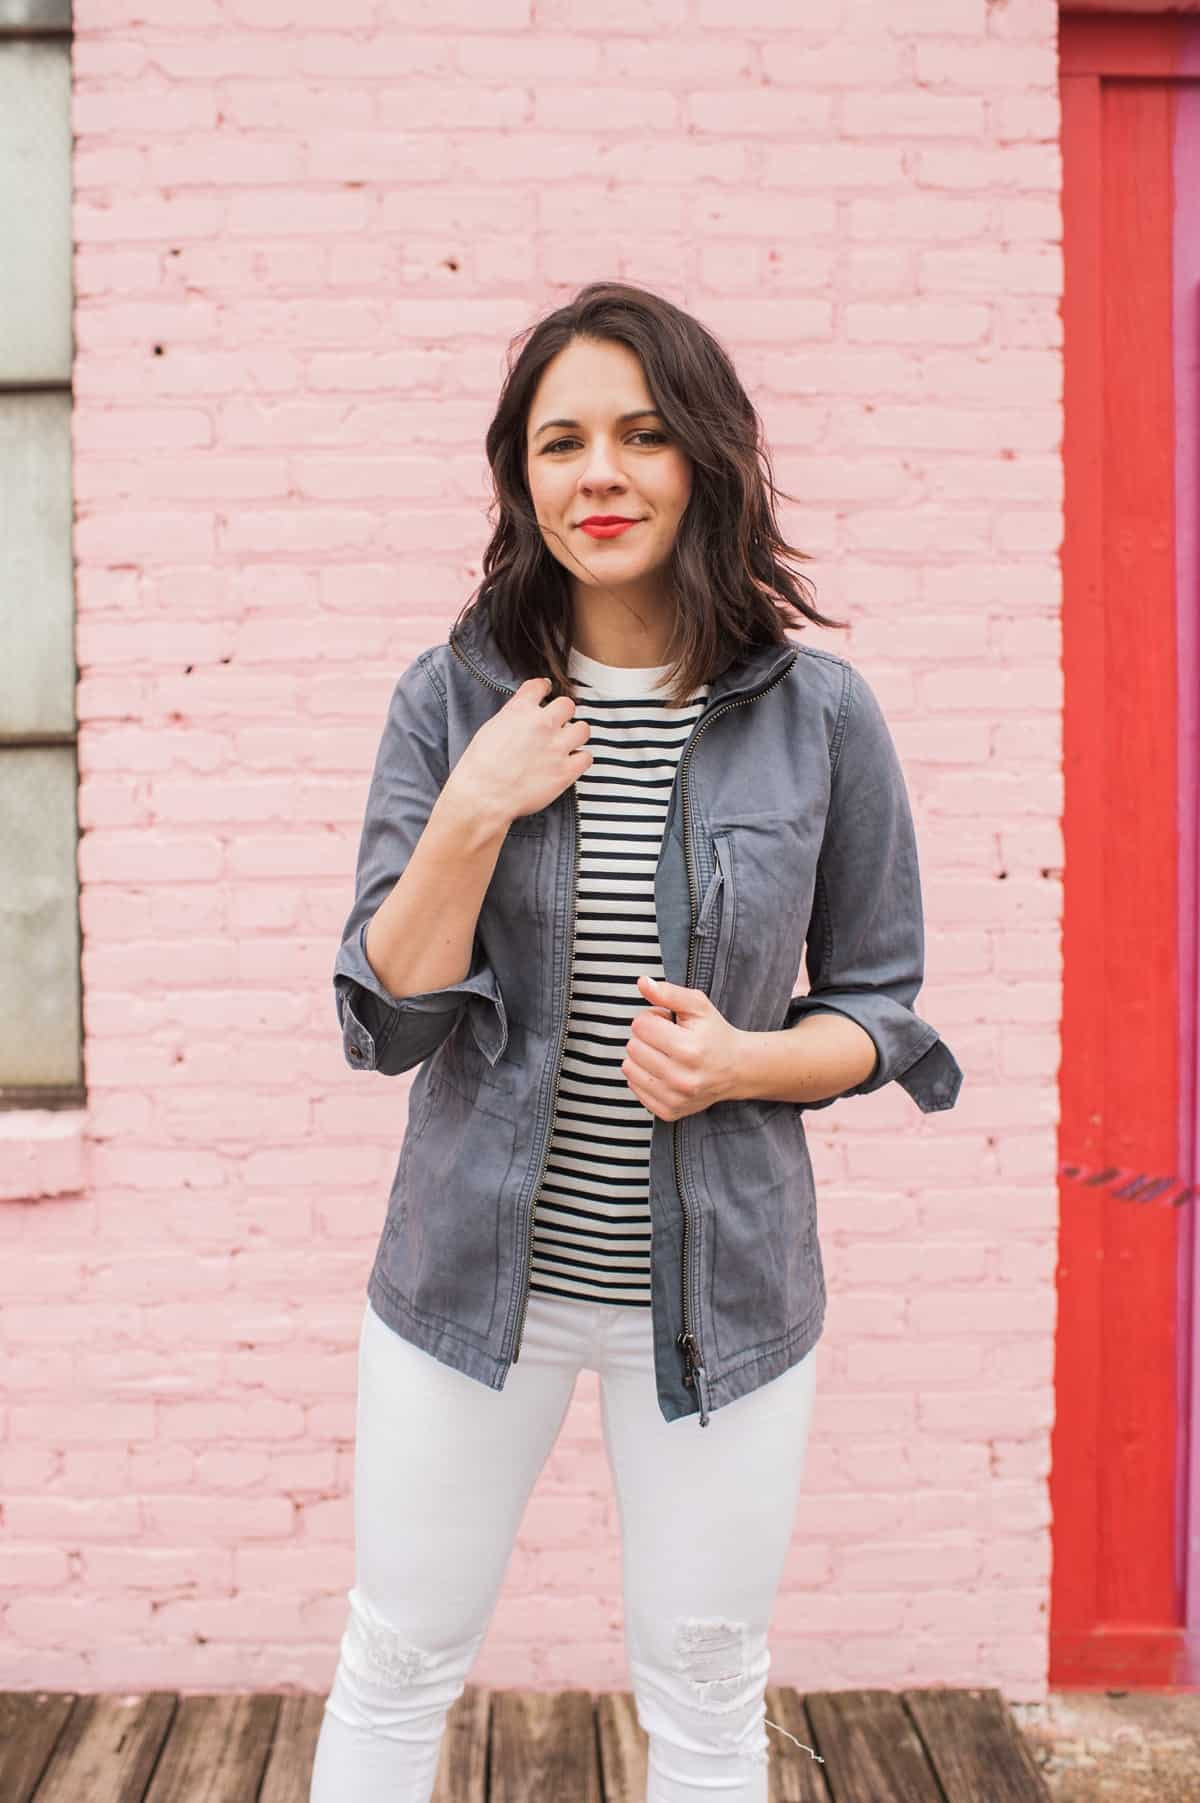 striped tee and white jeans outfit - fasion blog - @mystylevita